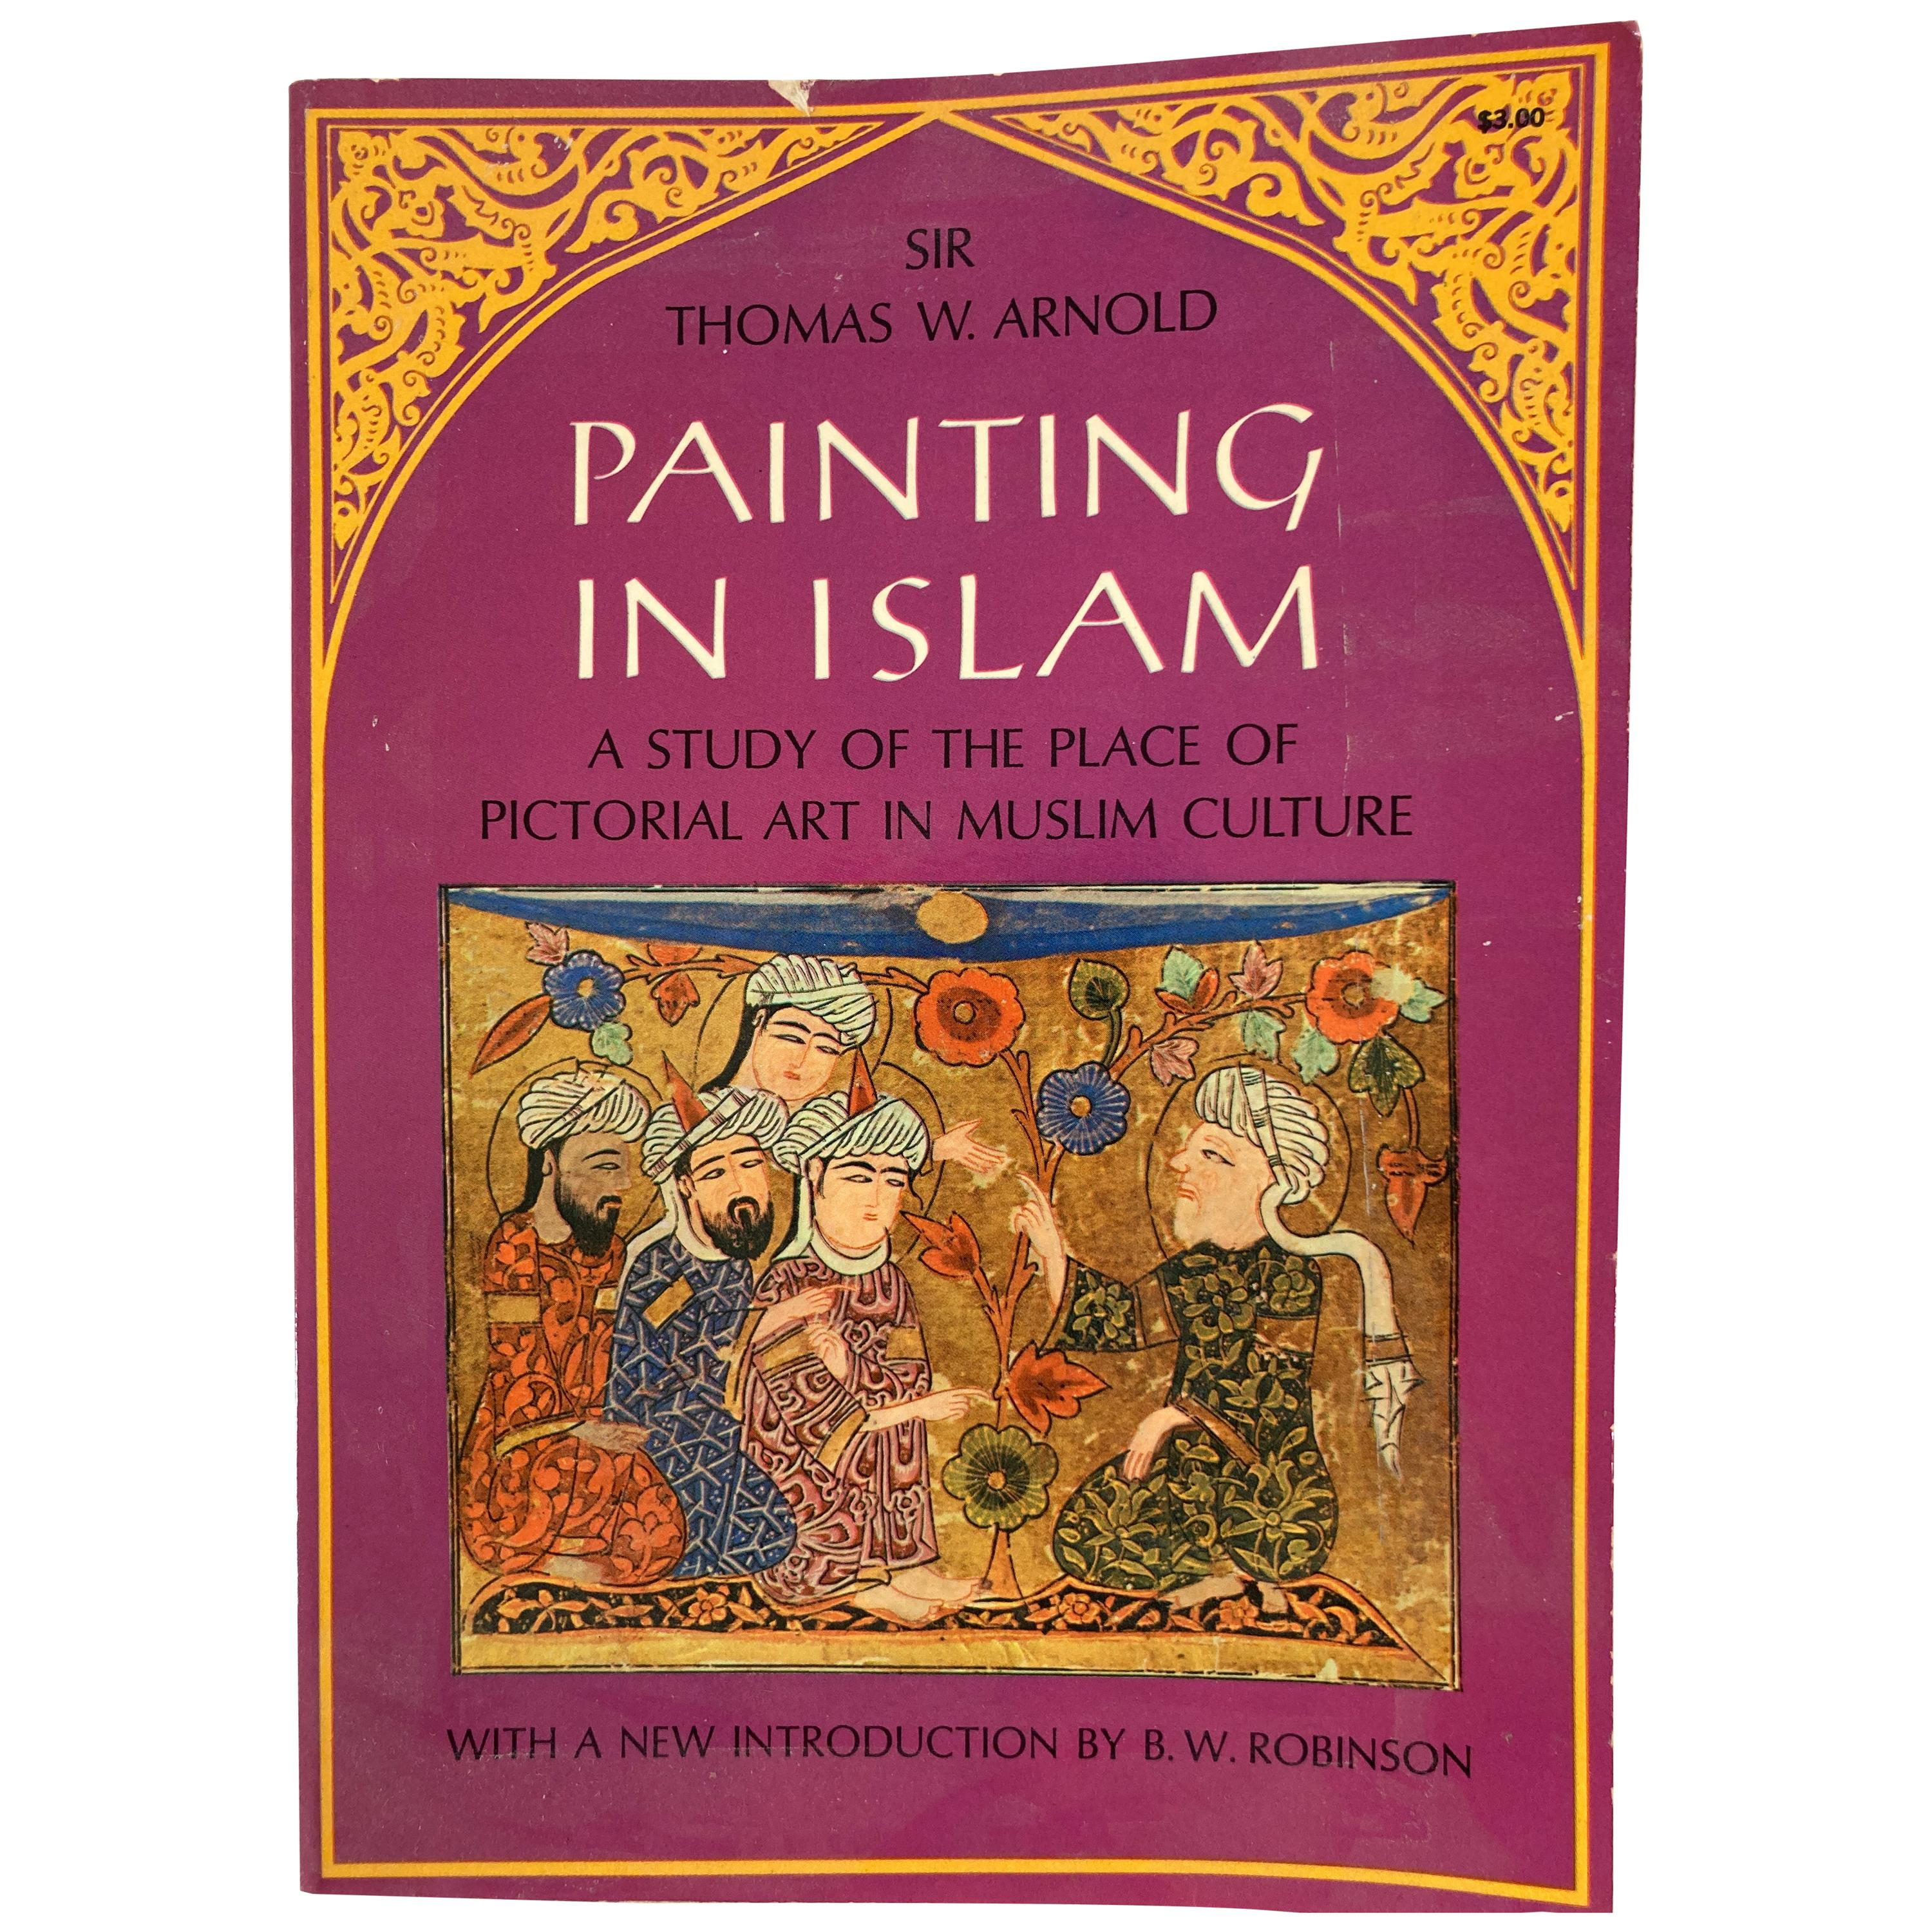 Painting in Islam by Sir Thomas W. Arnold, Book 1965